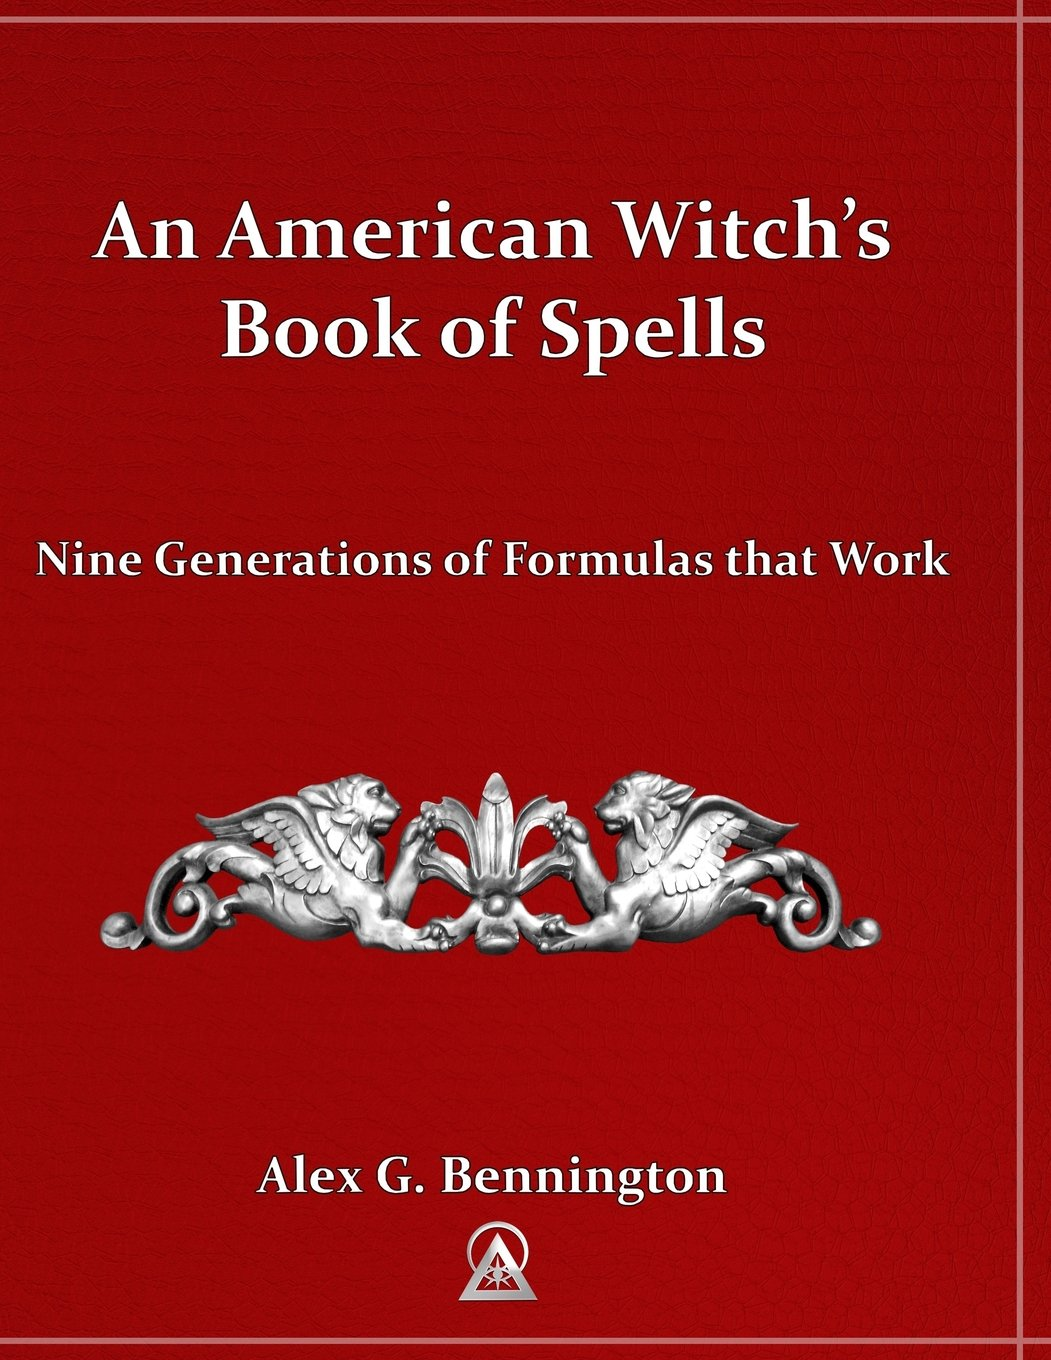 Download An American Witch's Book of Spells: Nine Generations of Formulas that Work PDF